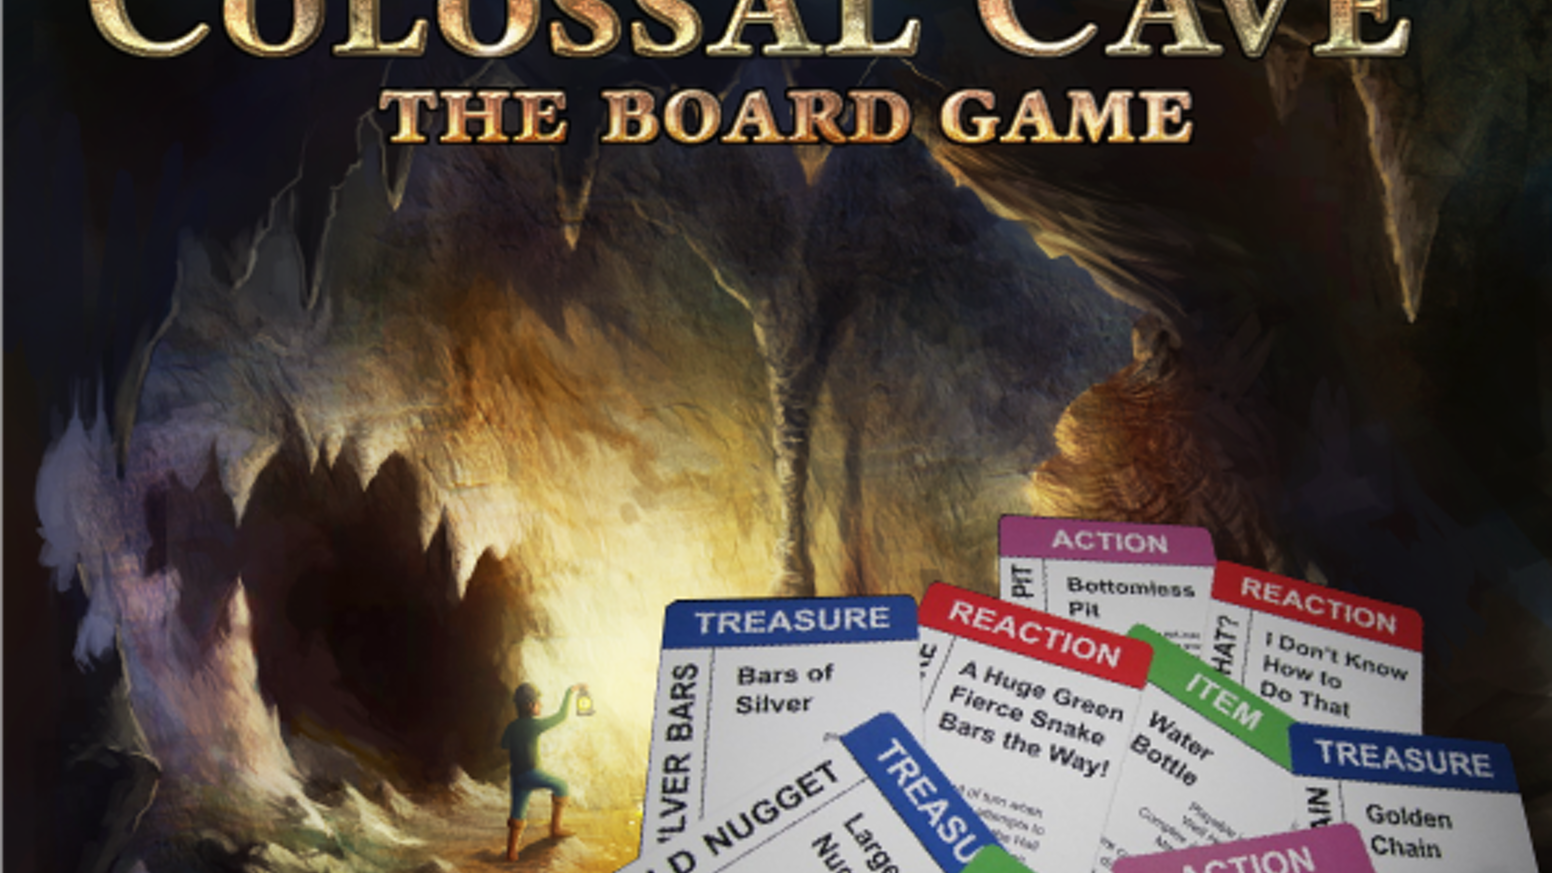 Colossal Cave: The Board Game by Arthur O'Dwyer — Kickstarter